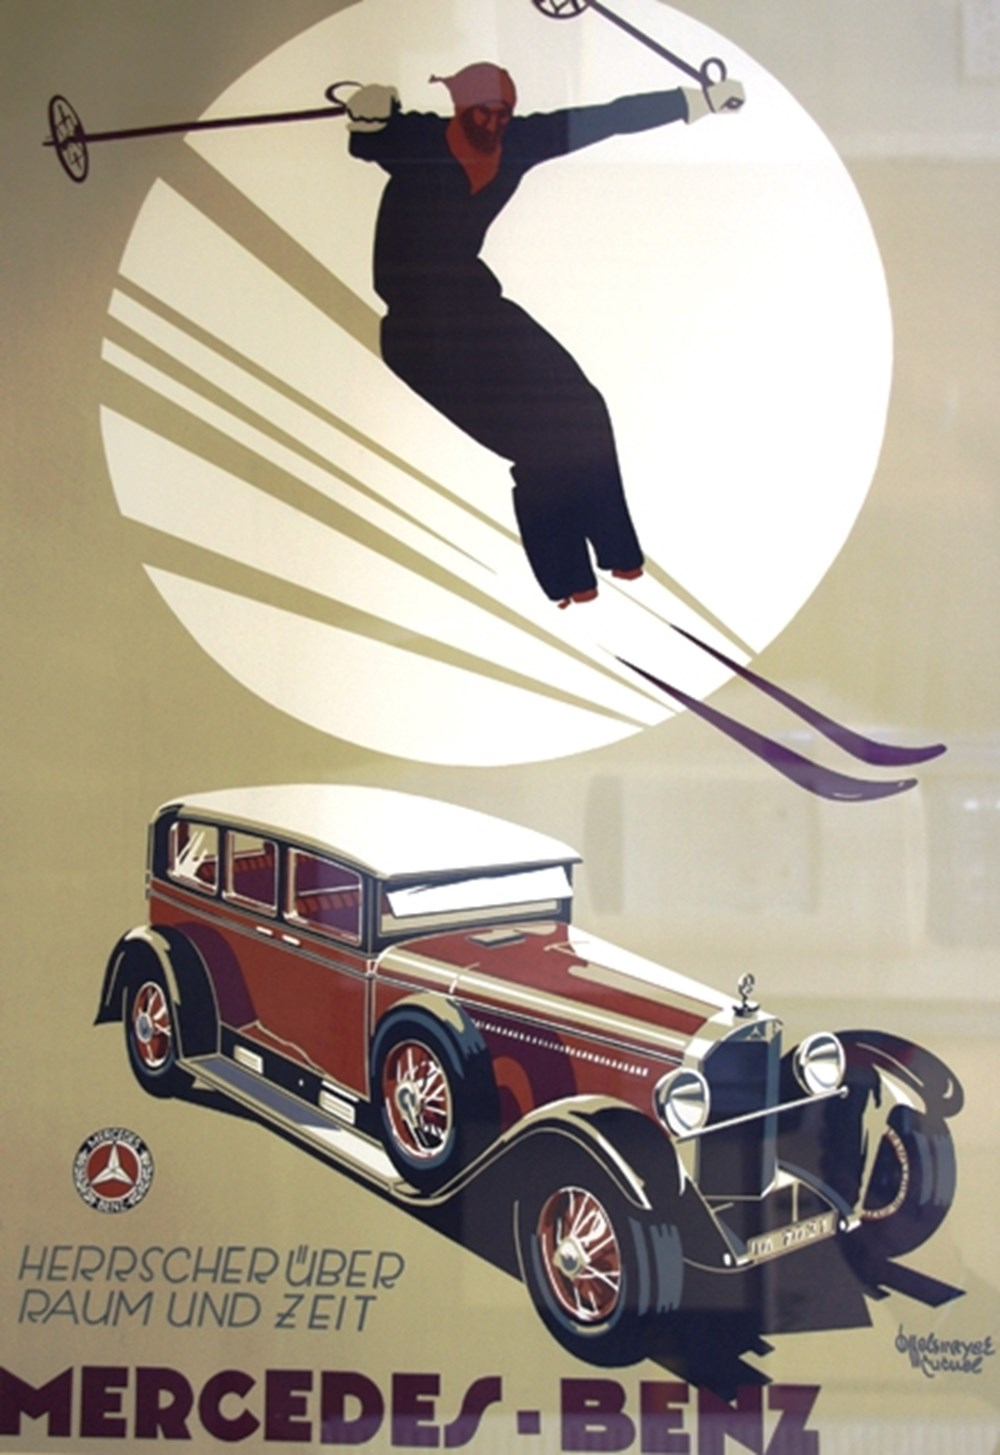 Lot 004 - Mercedes-Benz advertising posters